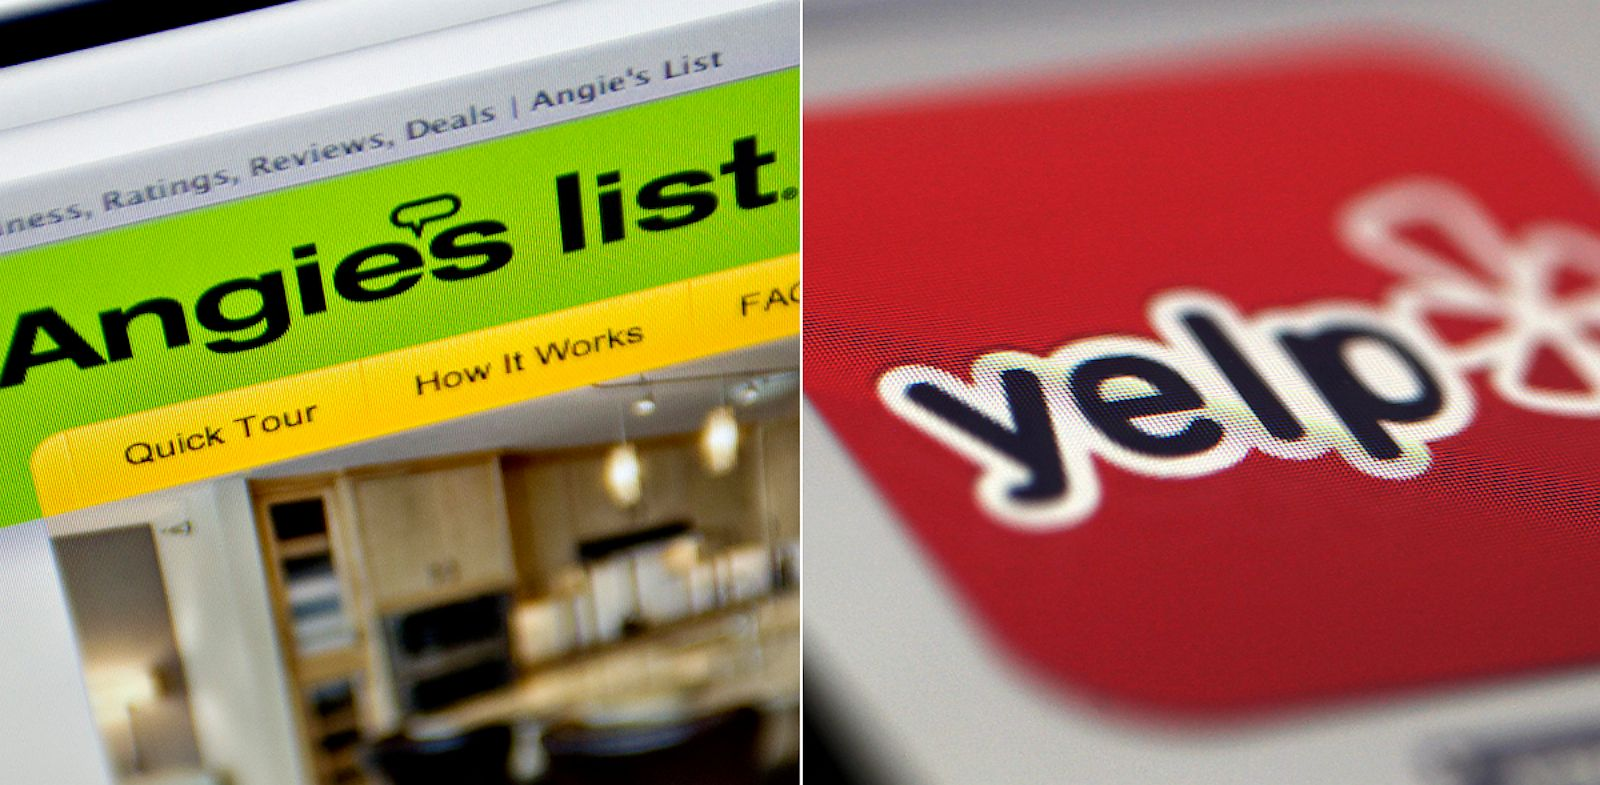 PHOTO: Angies List and Yelp are both online consumer-review sites.